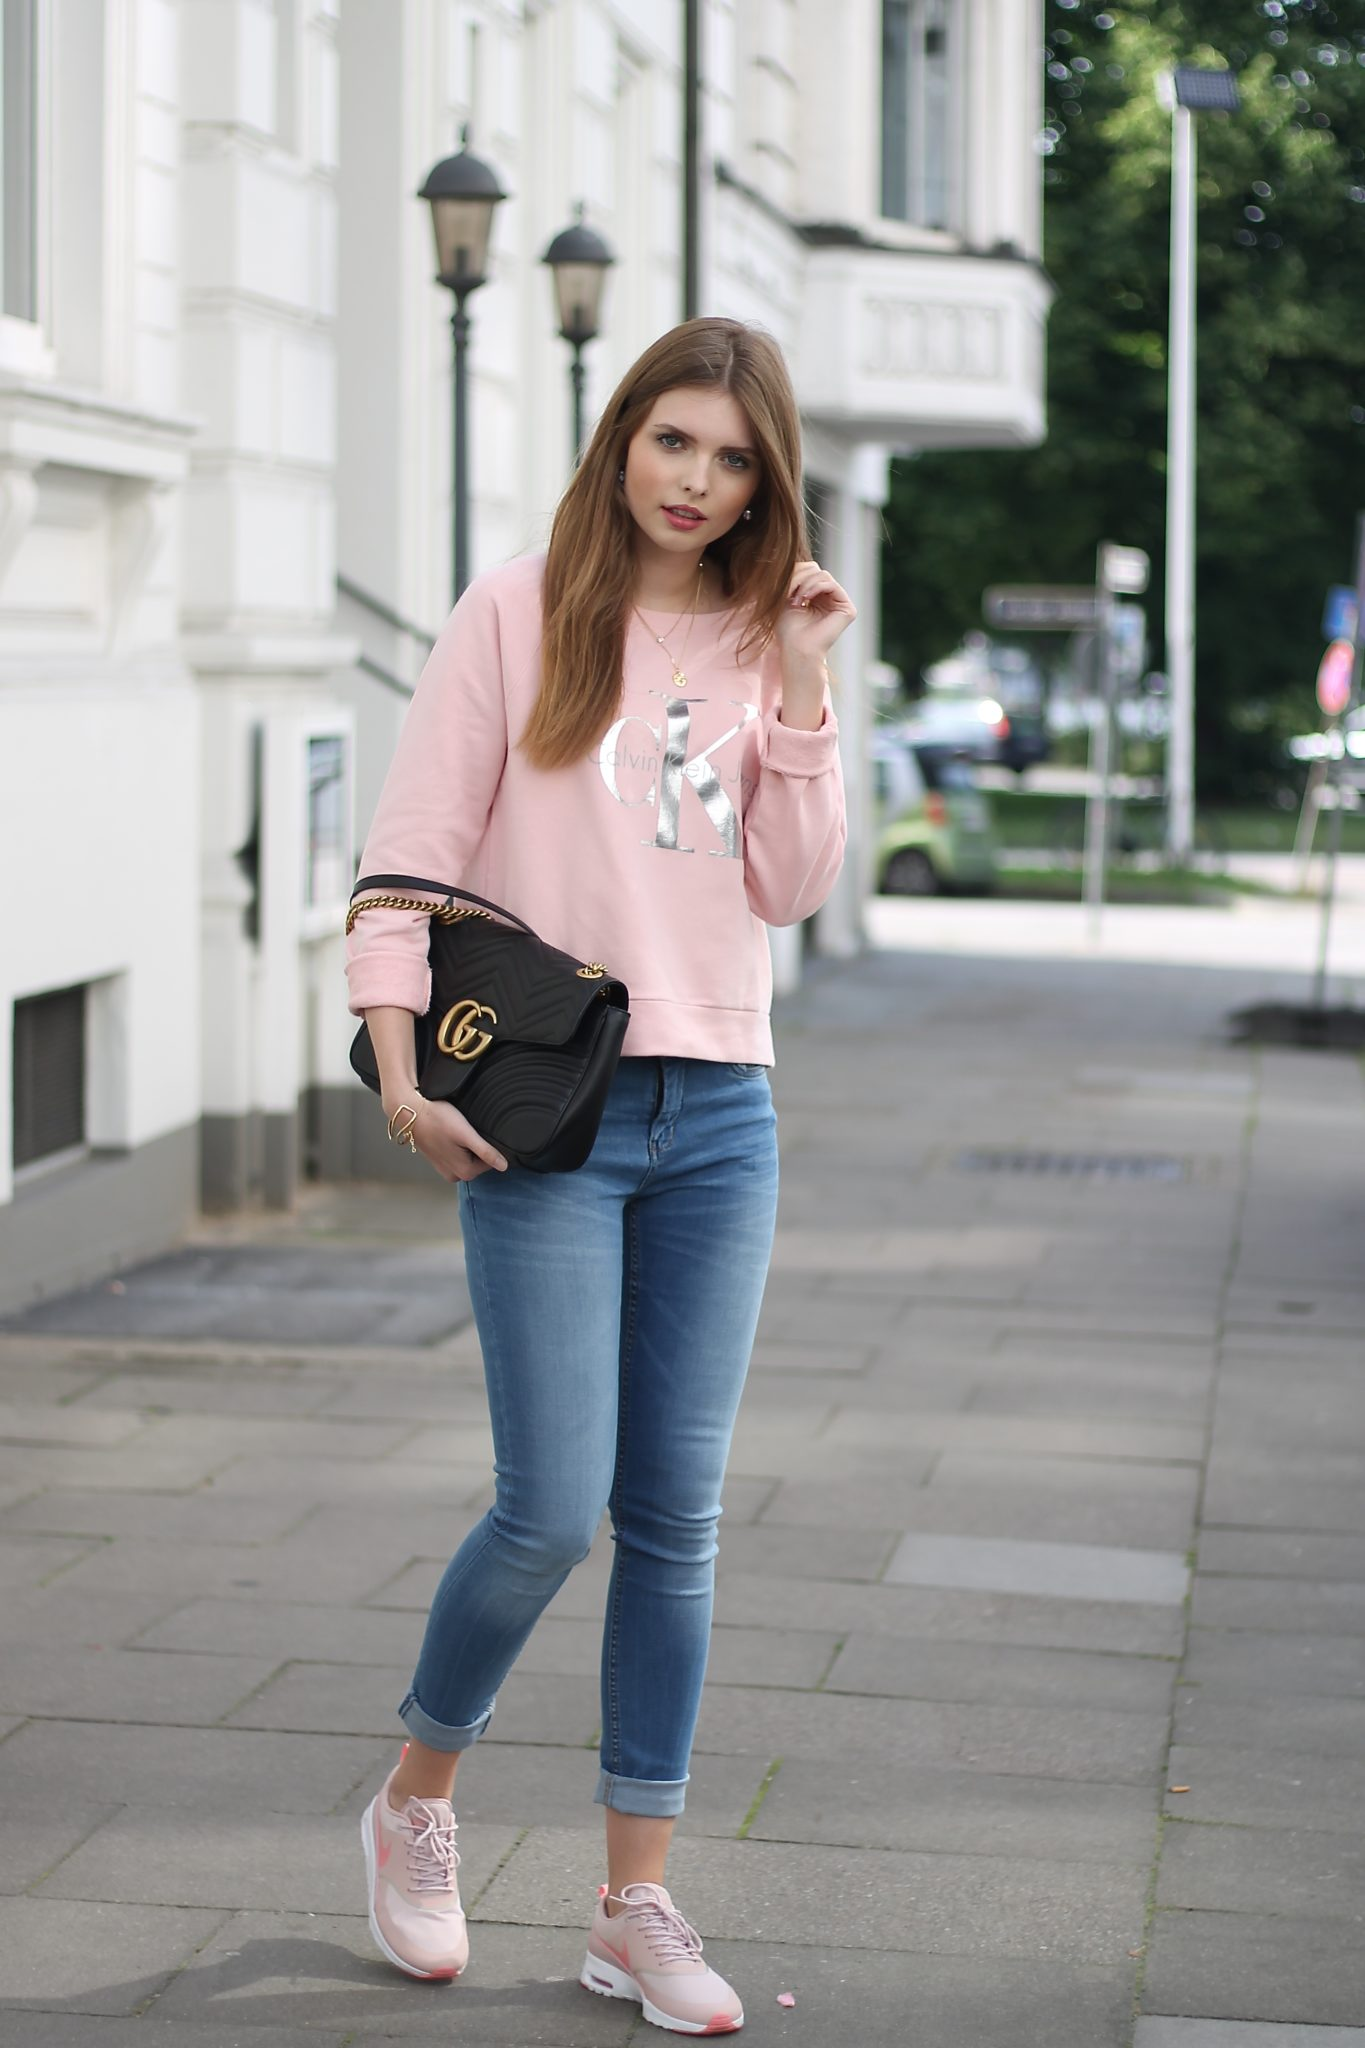 IMG 7746 - CASUAL STREET STYLE I CALVIN KLEIN x GUCCI MARMONT BAG